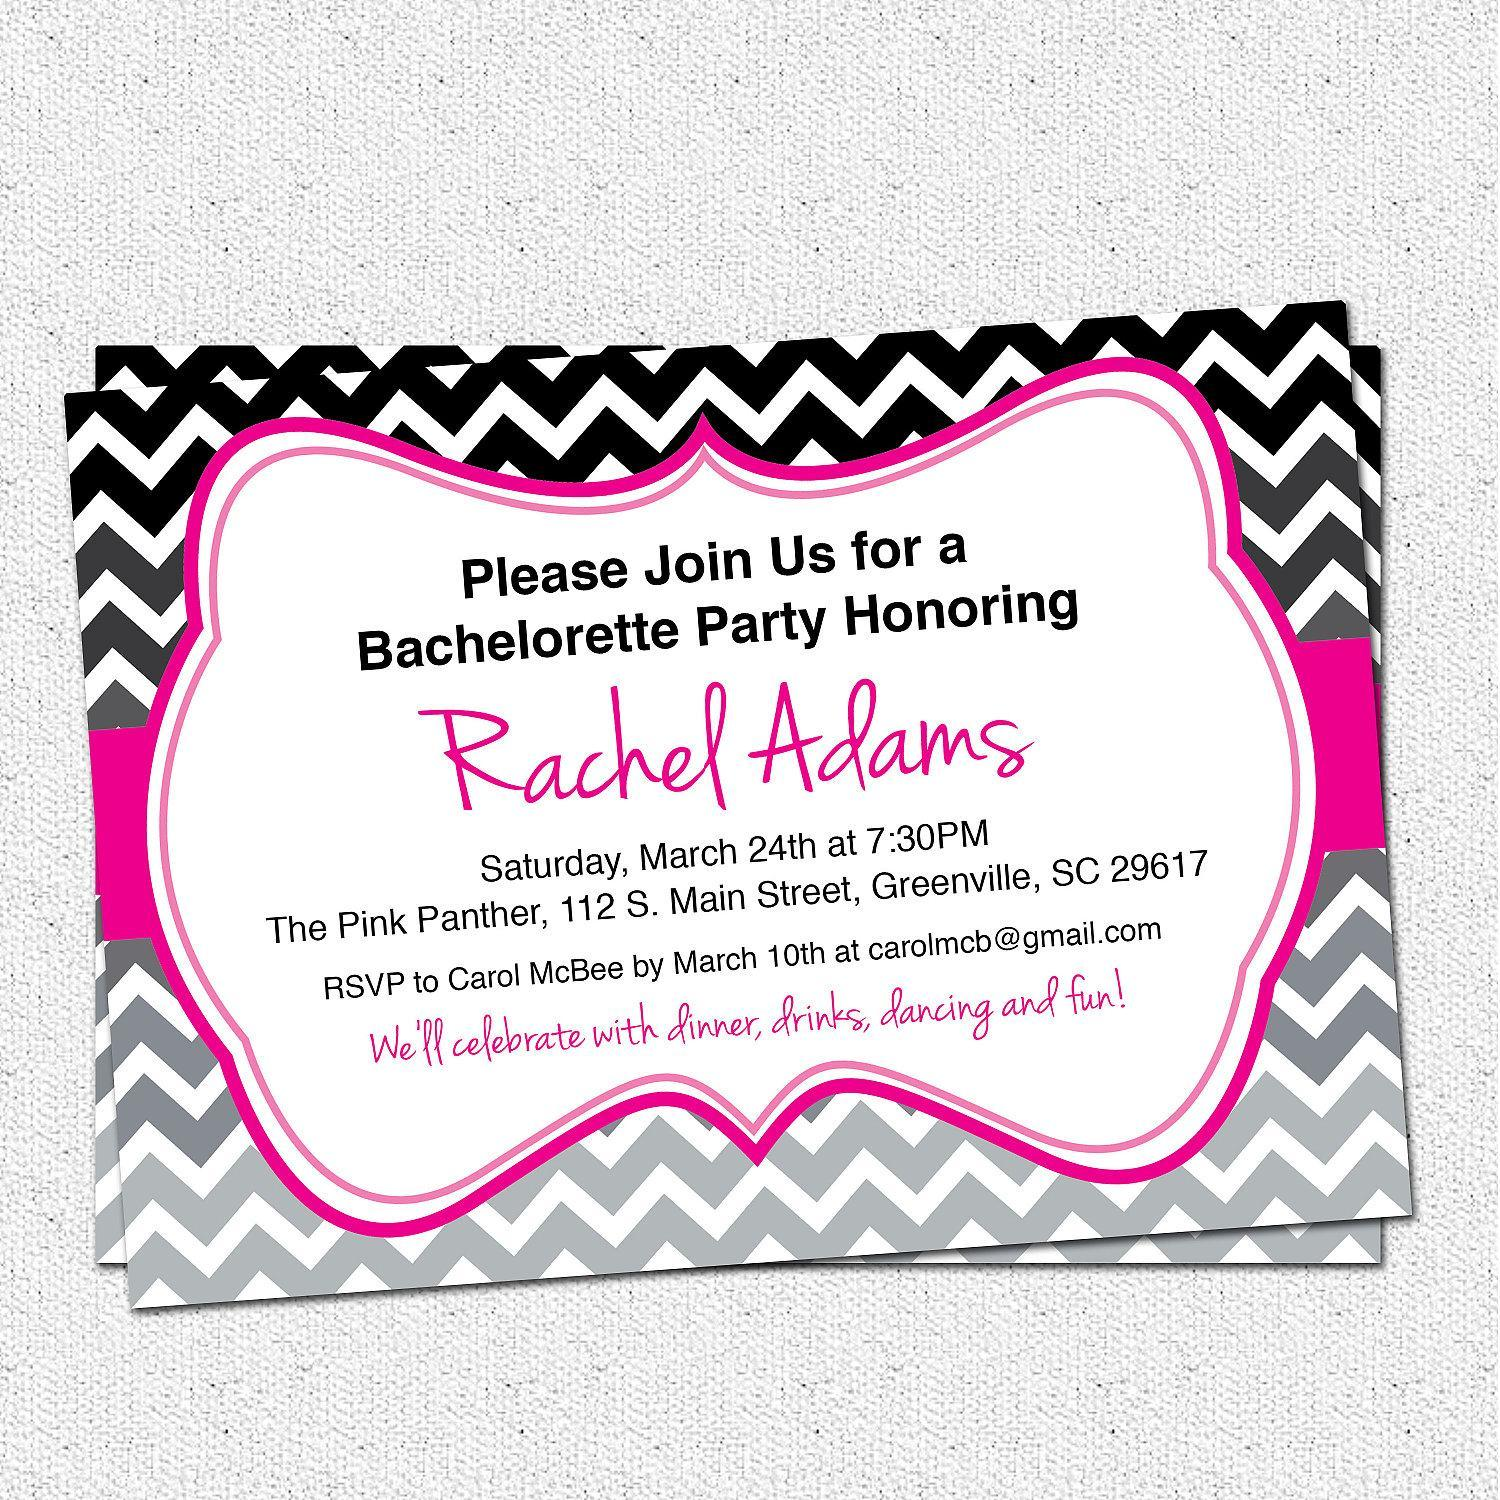 Bachelorette Invitations Templates Microsoft